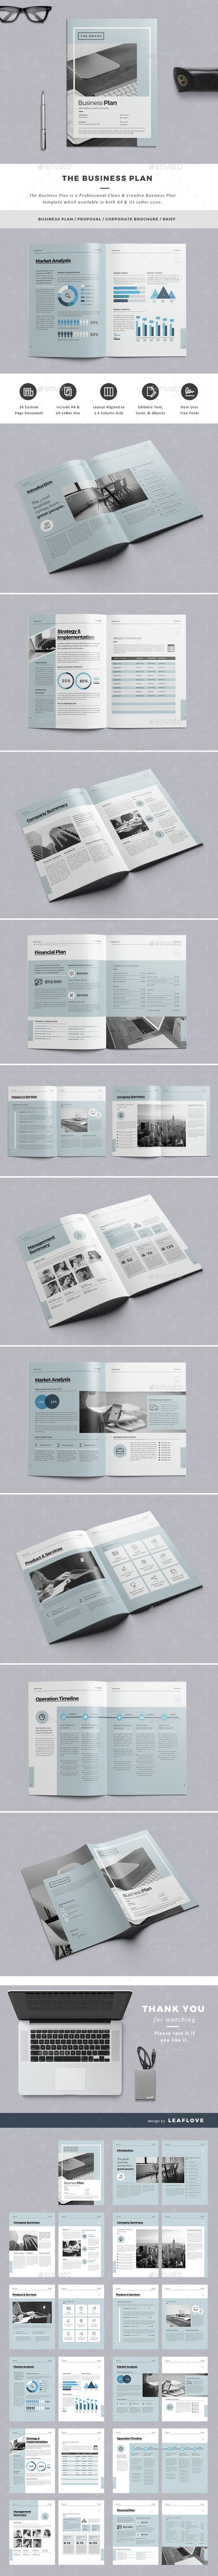 The Business Plan Template InDesign INDD. Download here: http ...